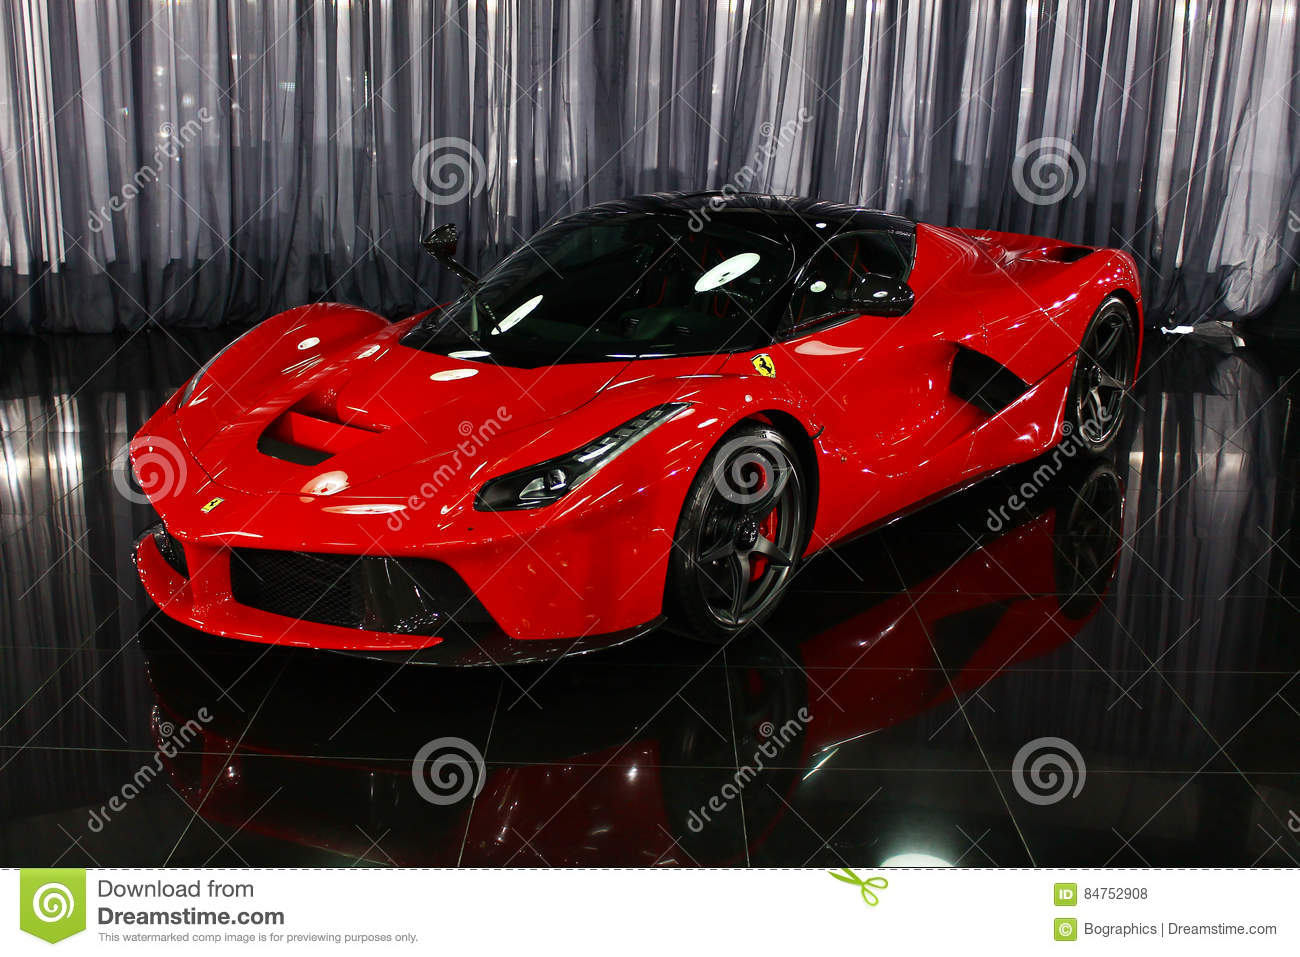 Ferrari Laferrari Hybrid Supercar In Showroom Editorial Stock